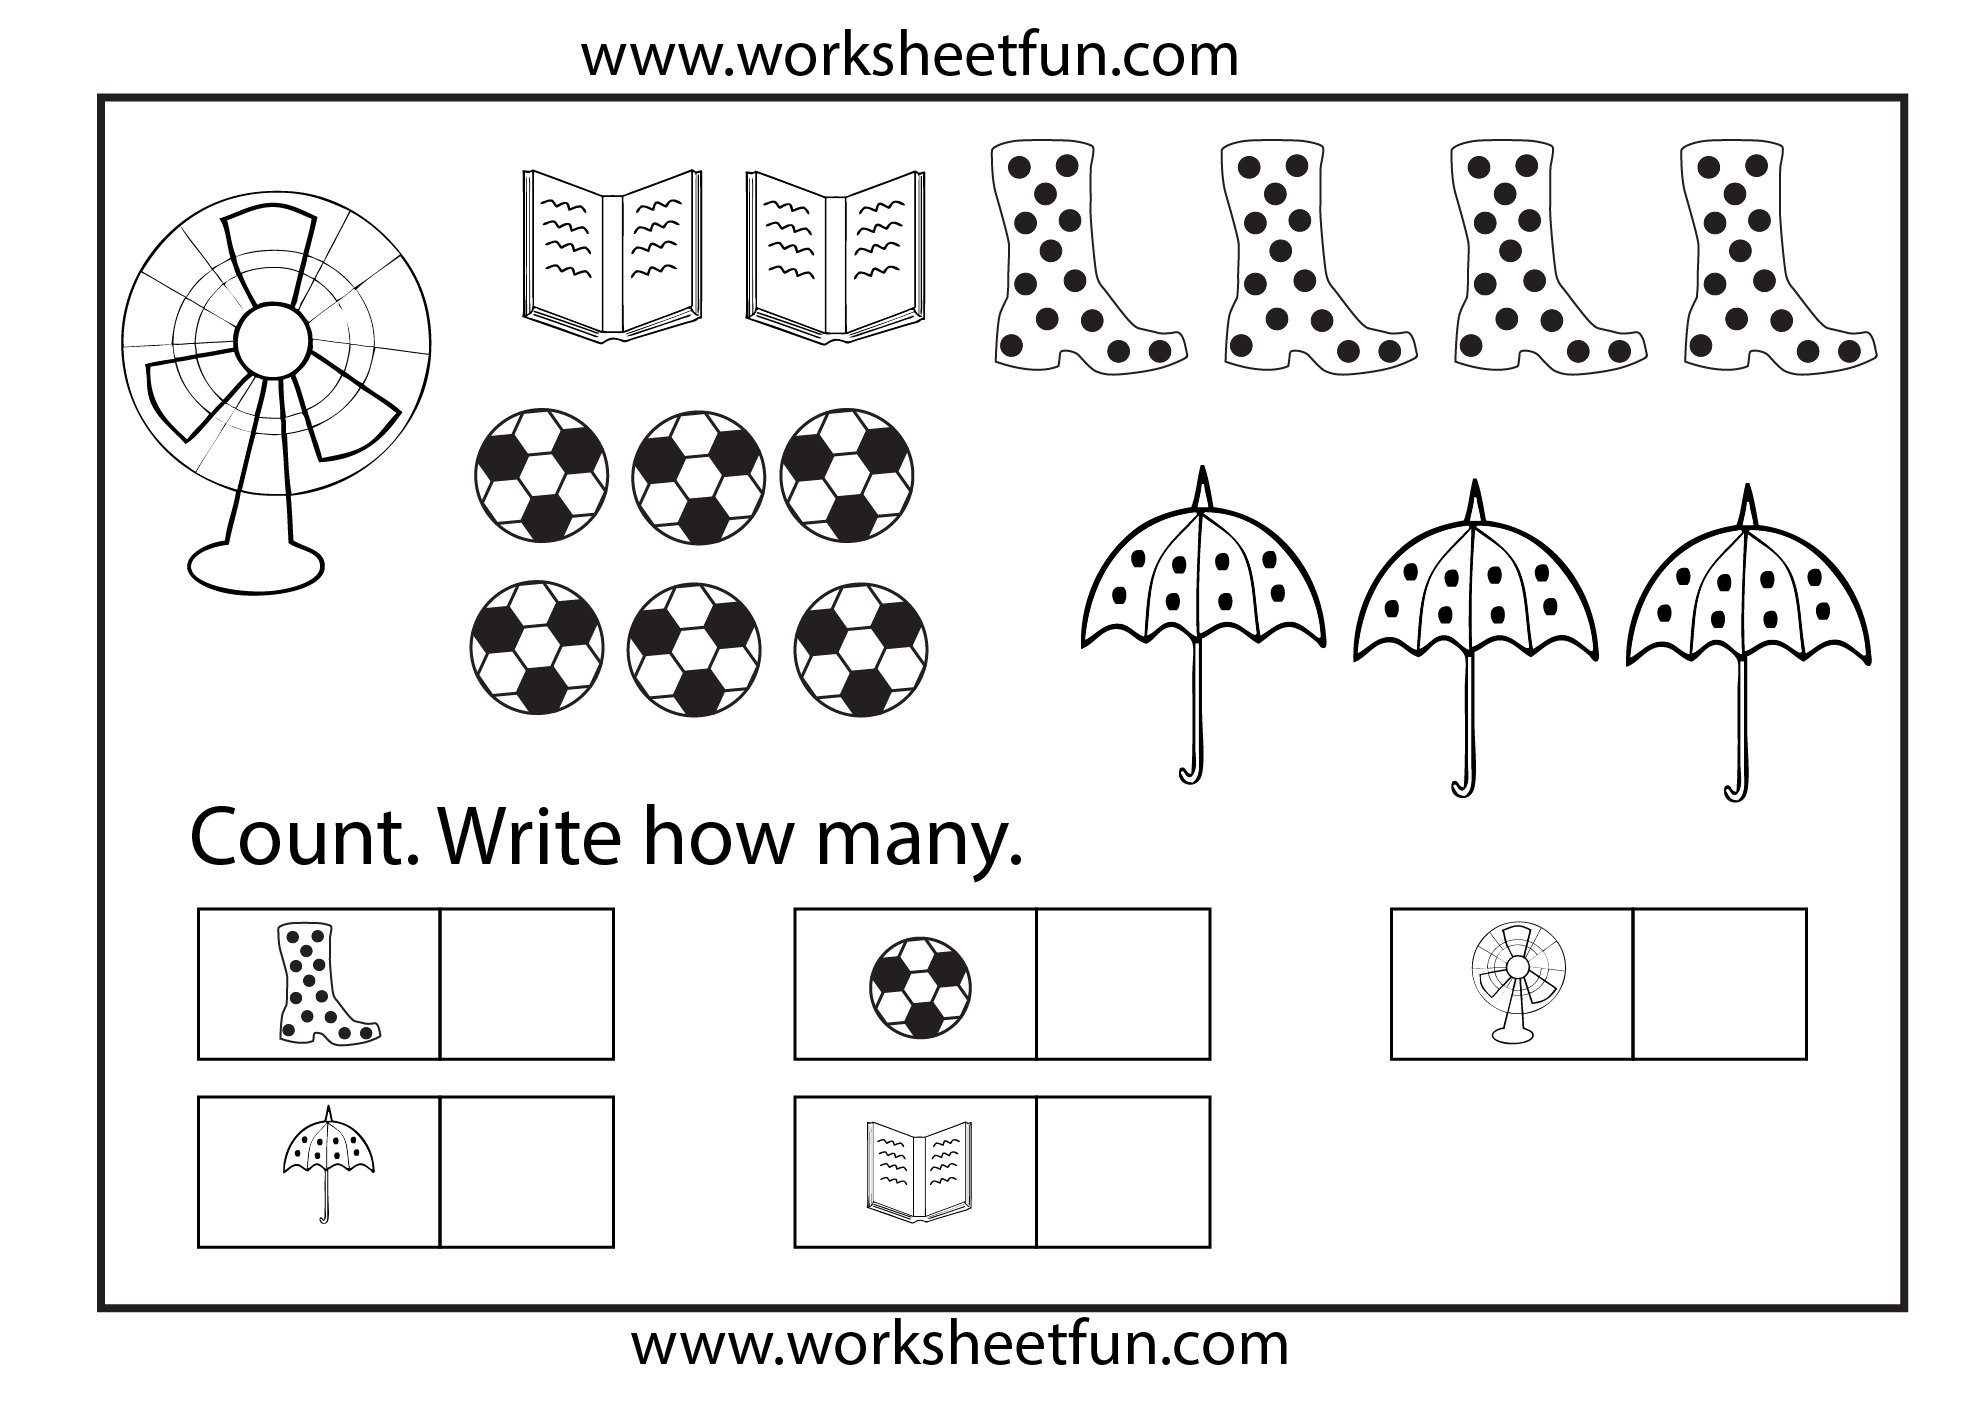 Worksheet Counting Worksheets Ks1 counting to 20 worksheets grade 3 multiplication worksheet free 1000 images about ludovik on pinterest count f0c1c7993633d6e1424996dd69a65d87 cou